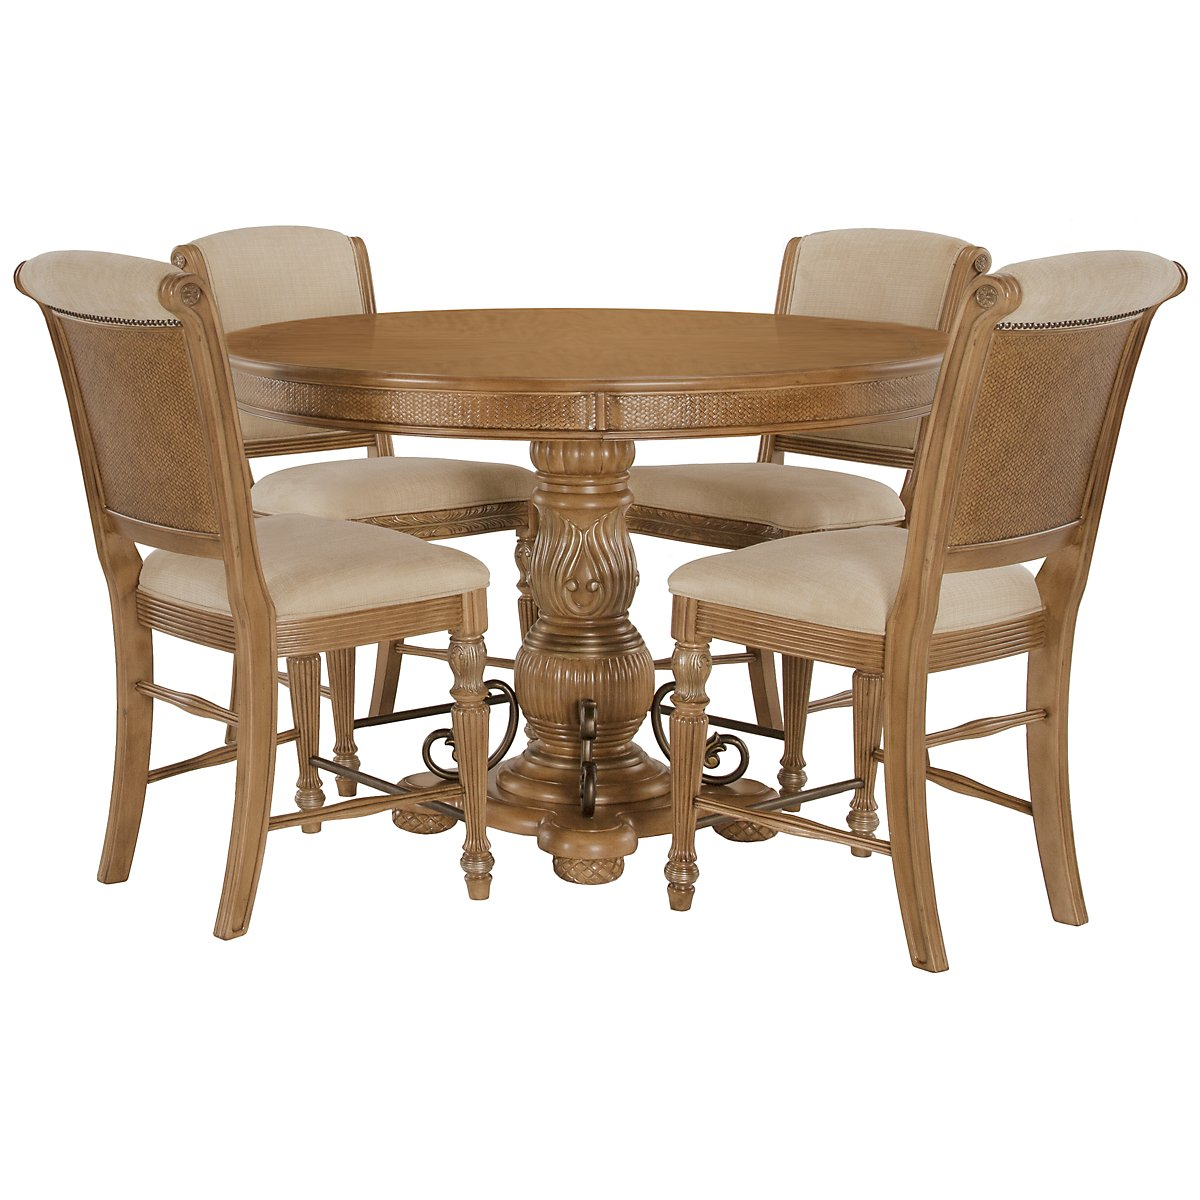 Tradewinds Light Tone Wood High Table & 4 Upholstered Barstools